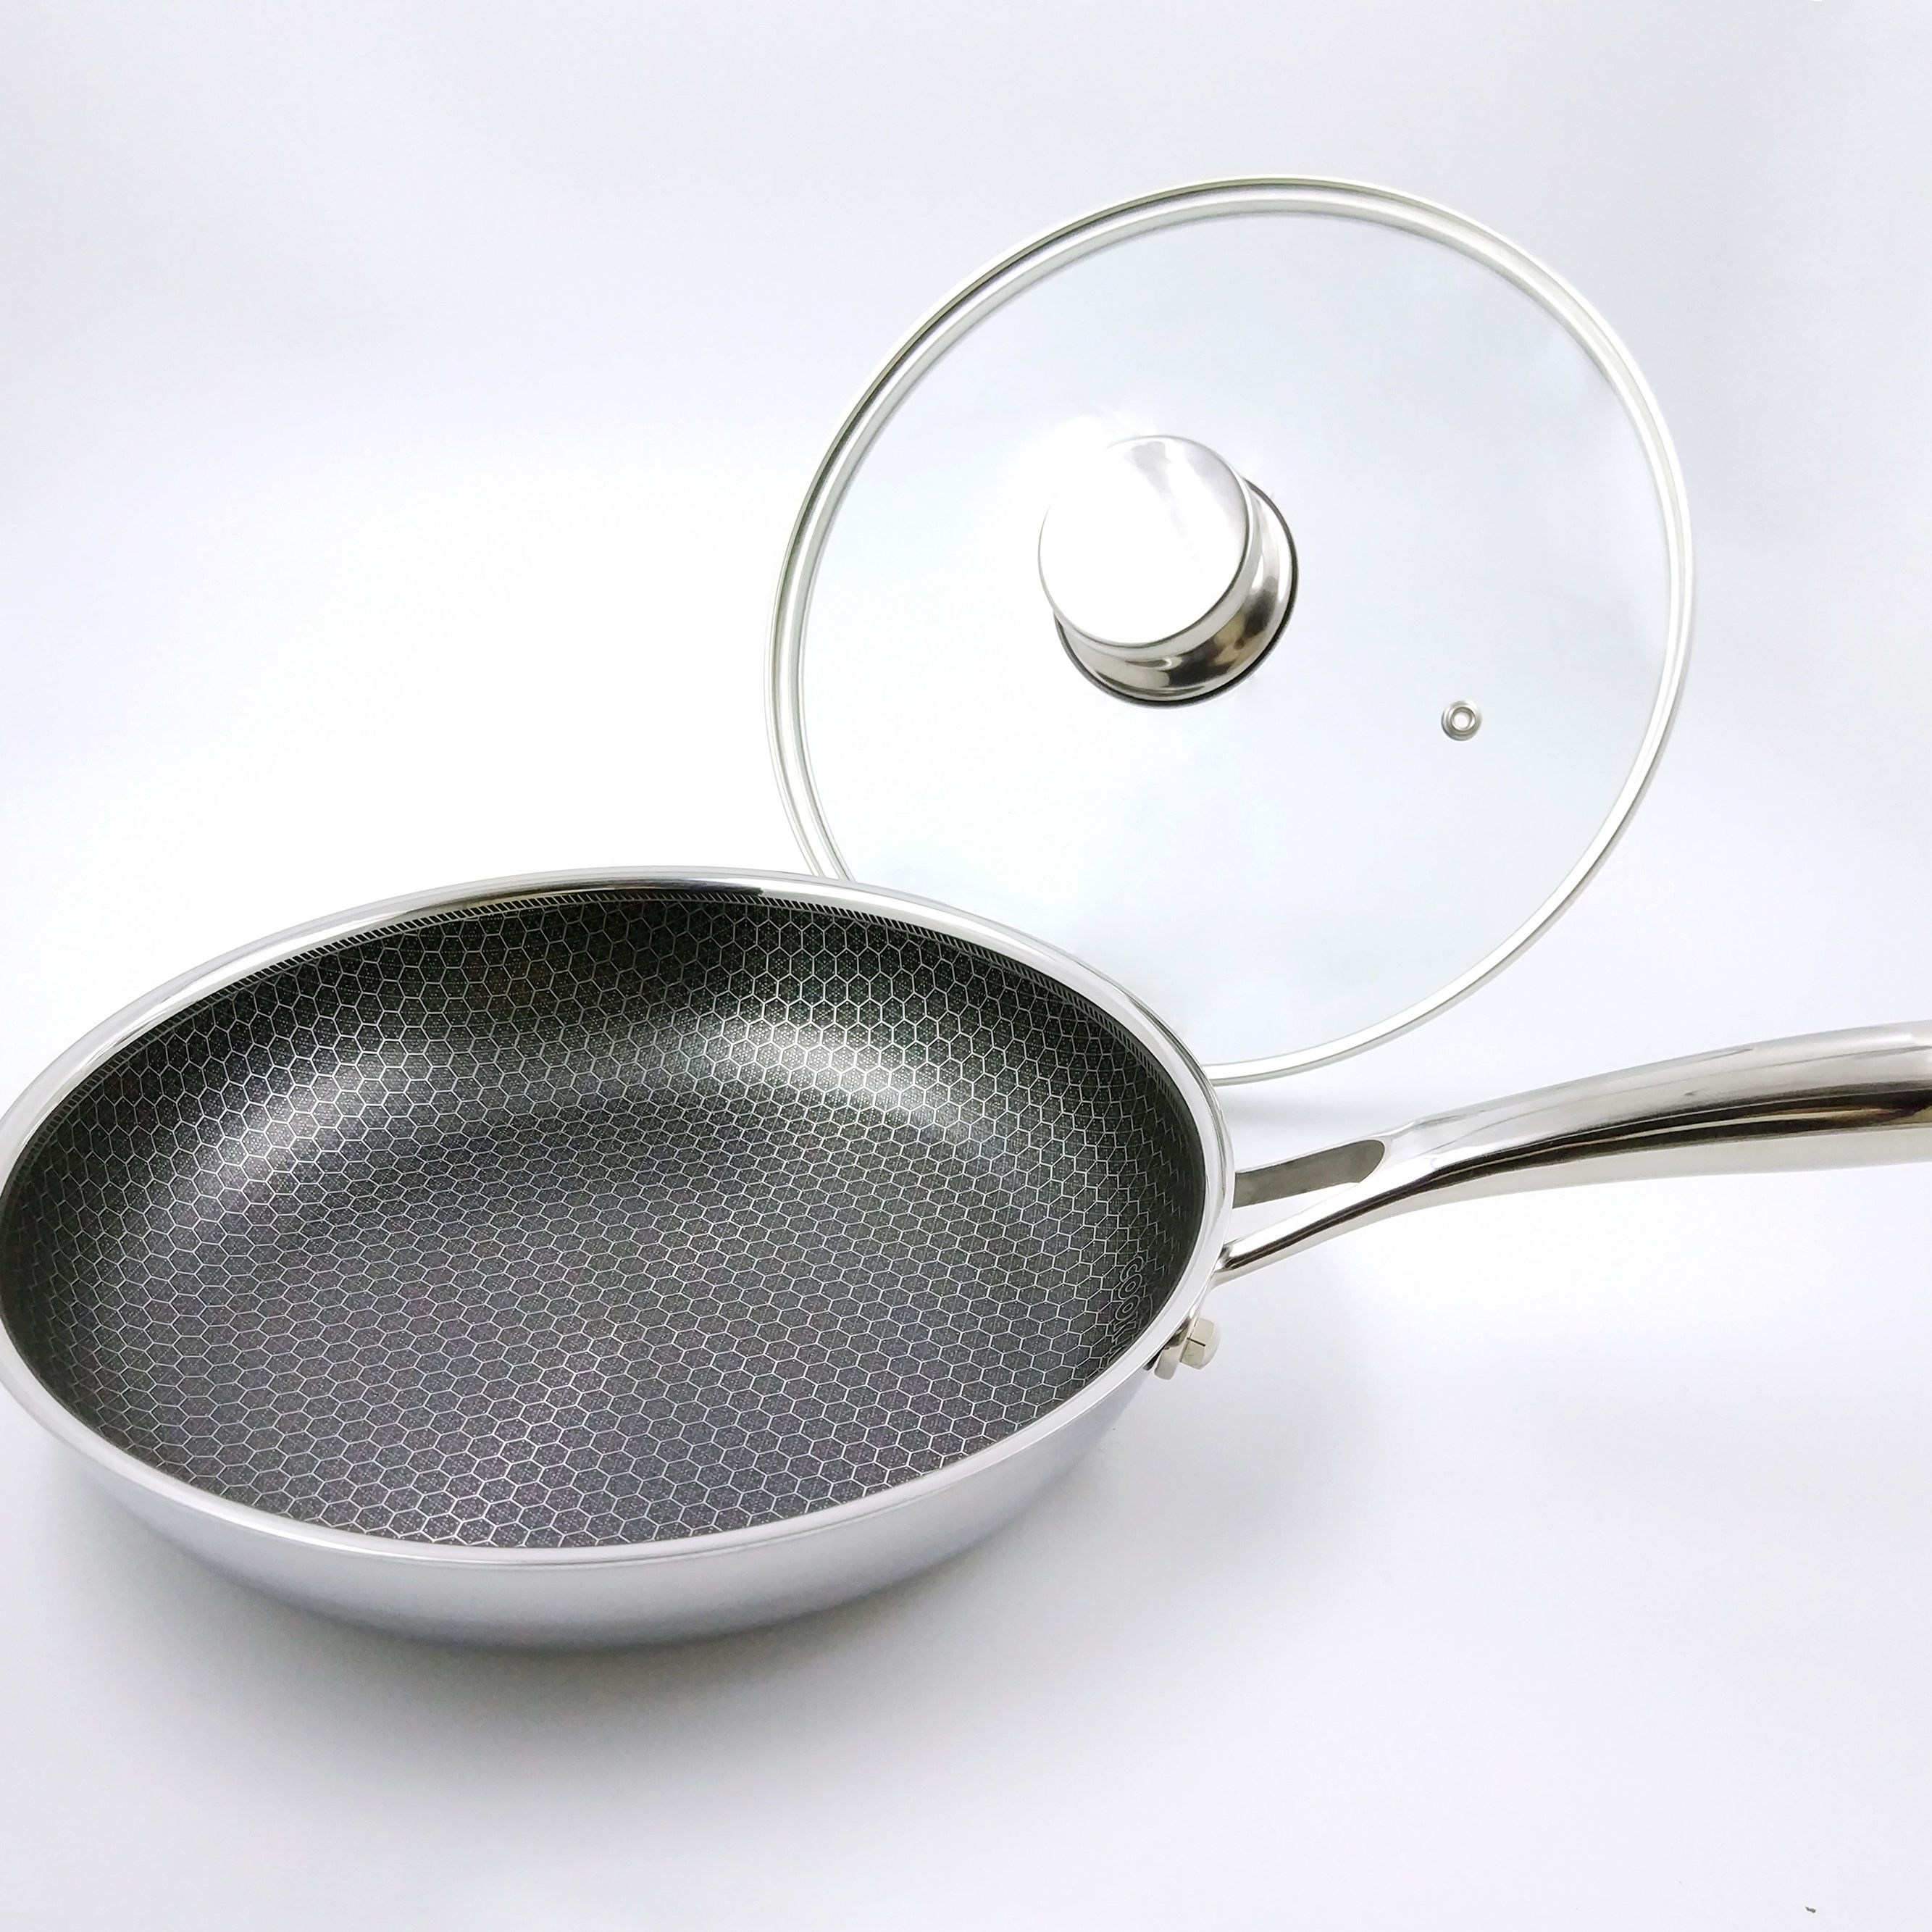 24cm/11 inch stainless steel honeycomb not stick fry pan